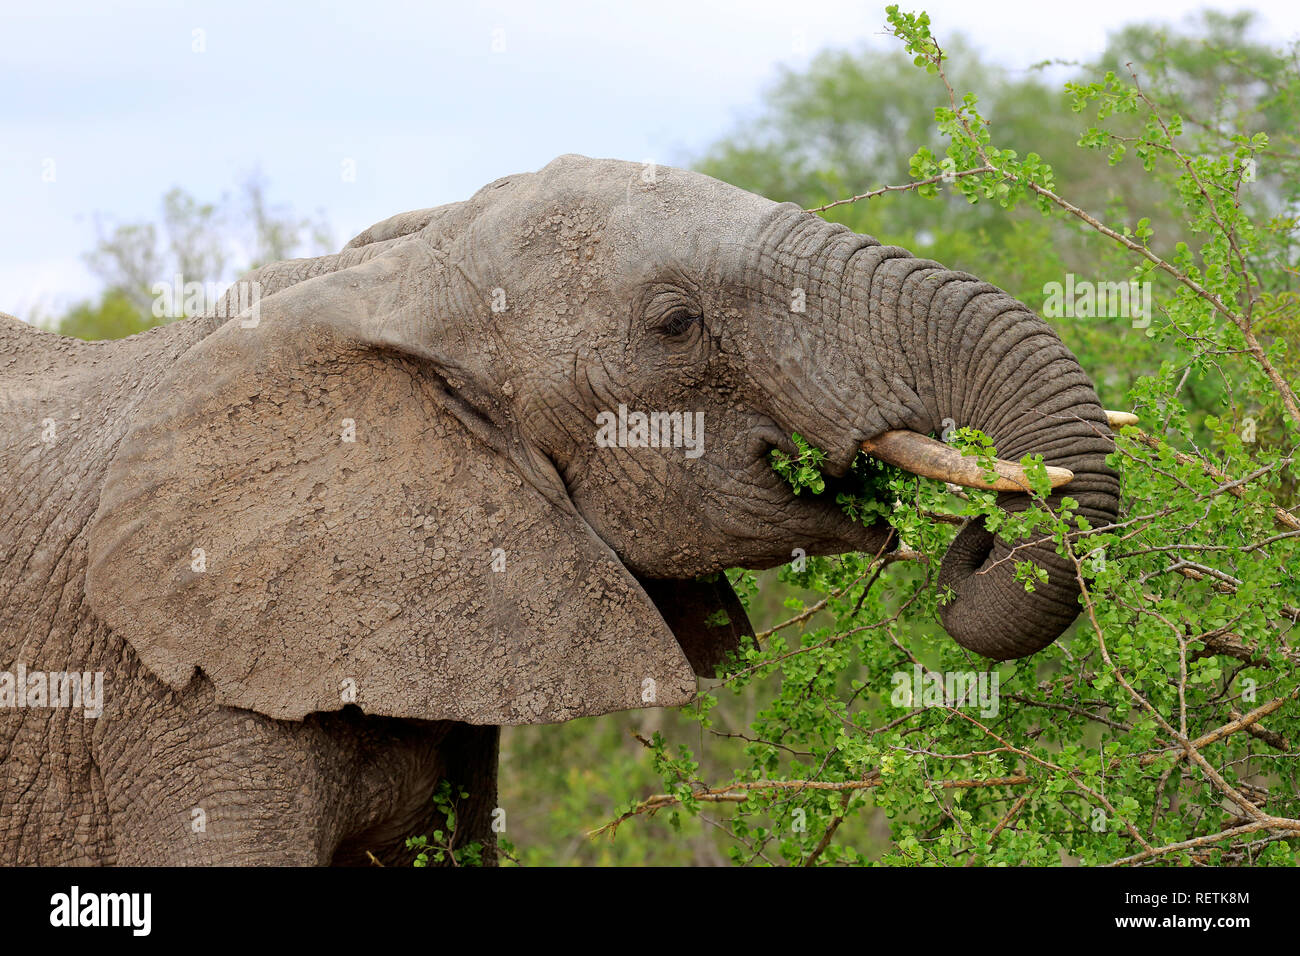 African Elephant, adult feeding portrait, Sabi Sand Game Reserve, Kruger Nationalpark, South Africa, Africa, (Loxodonta africana) - Stock Image